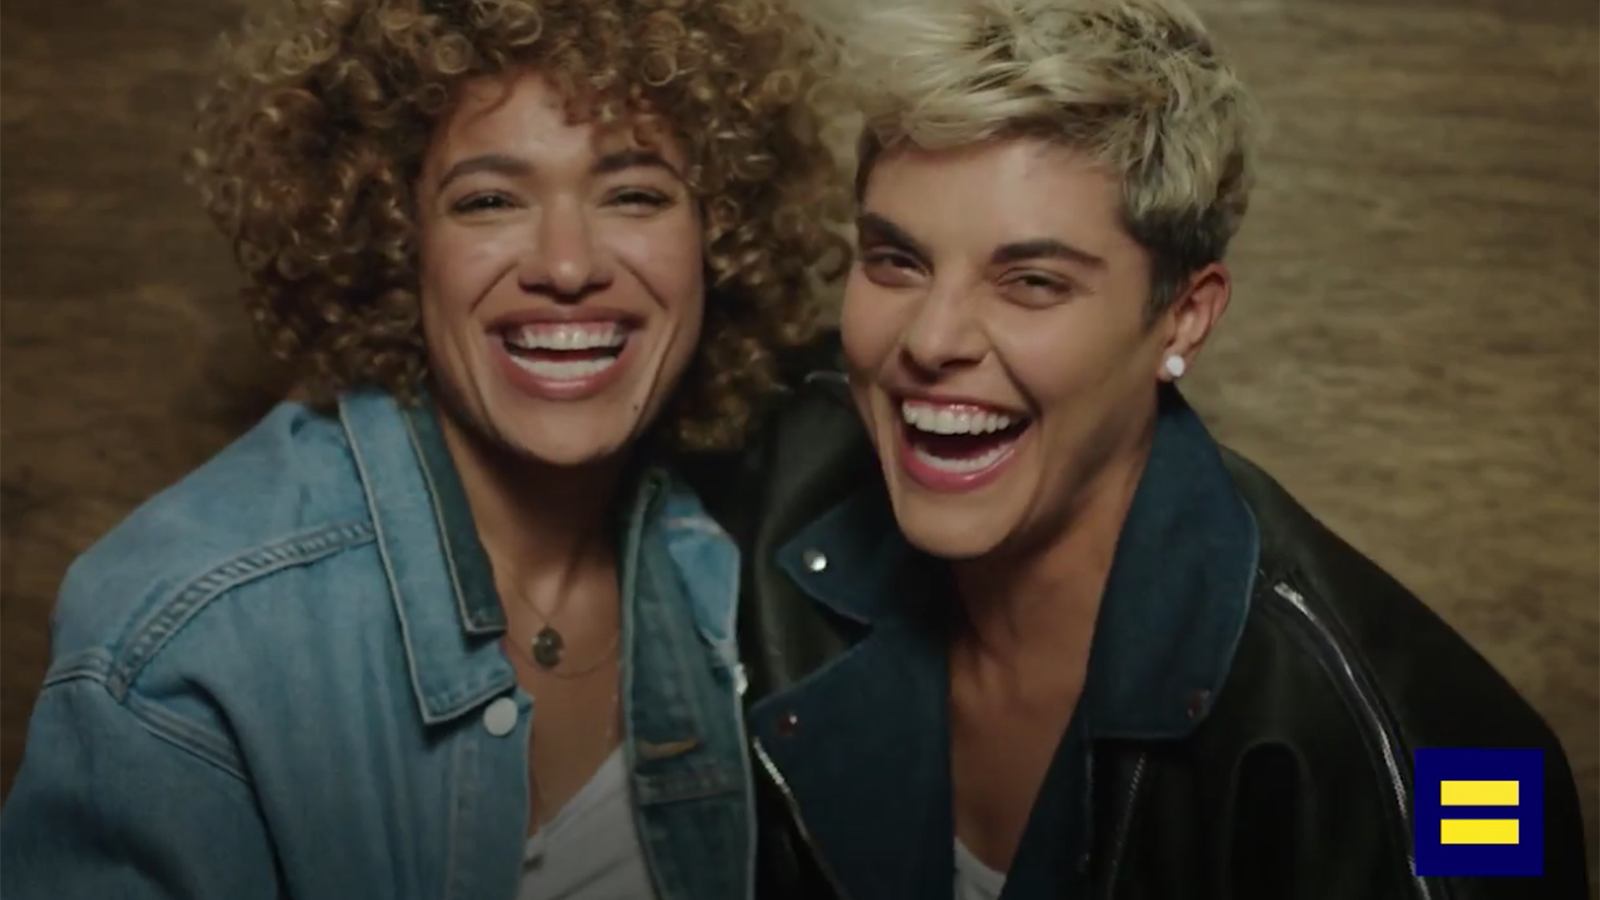 Artist Starley Joins HRC's Equality Rocks Campaign